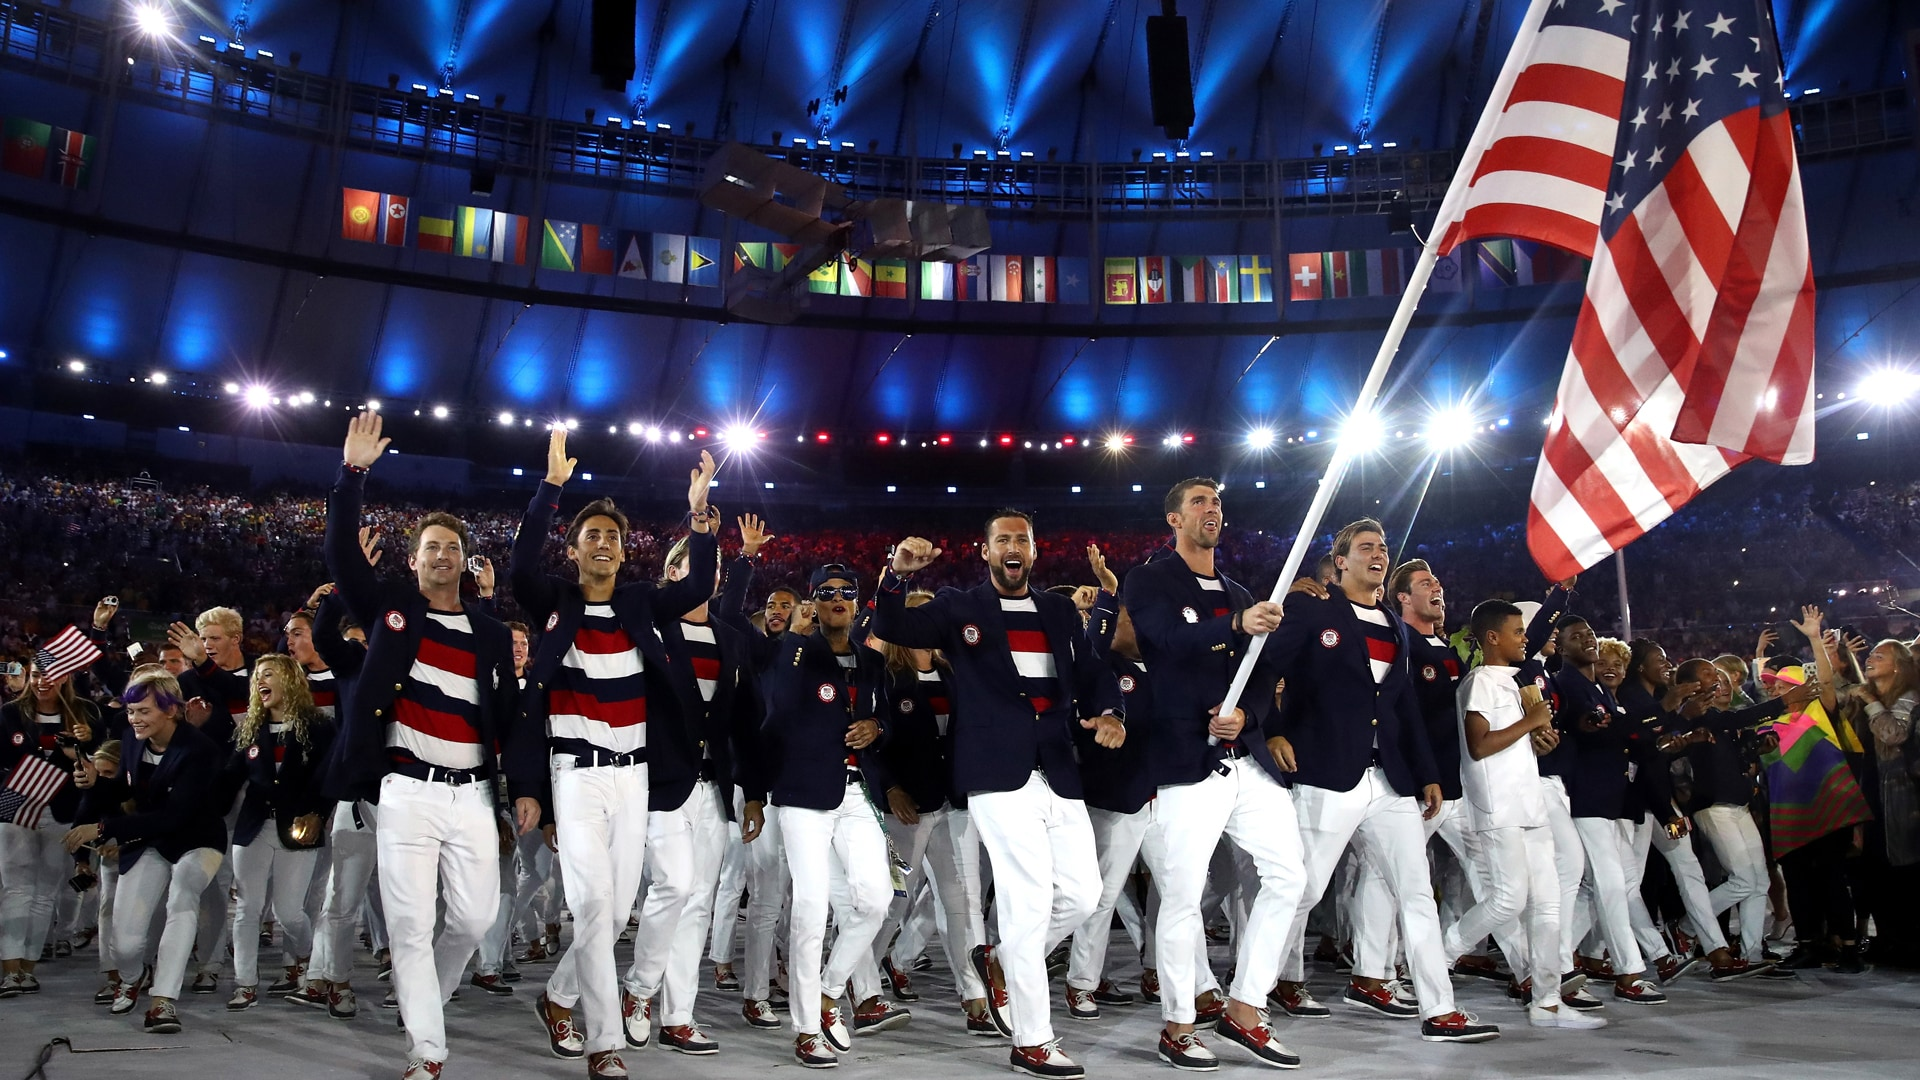 Lighting the Olympic Flame: Iconic Ceremony Moments